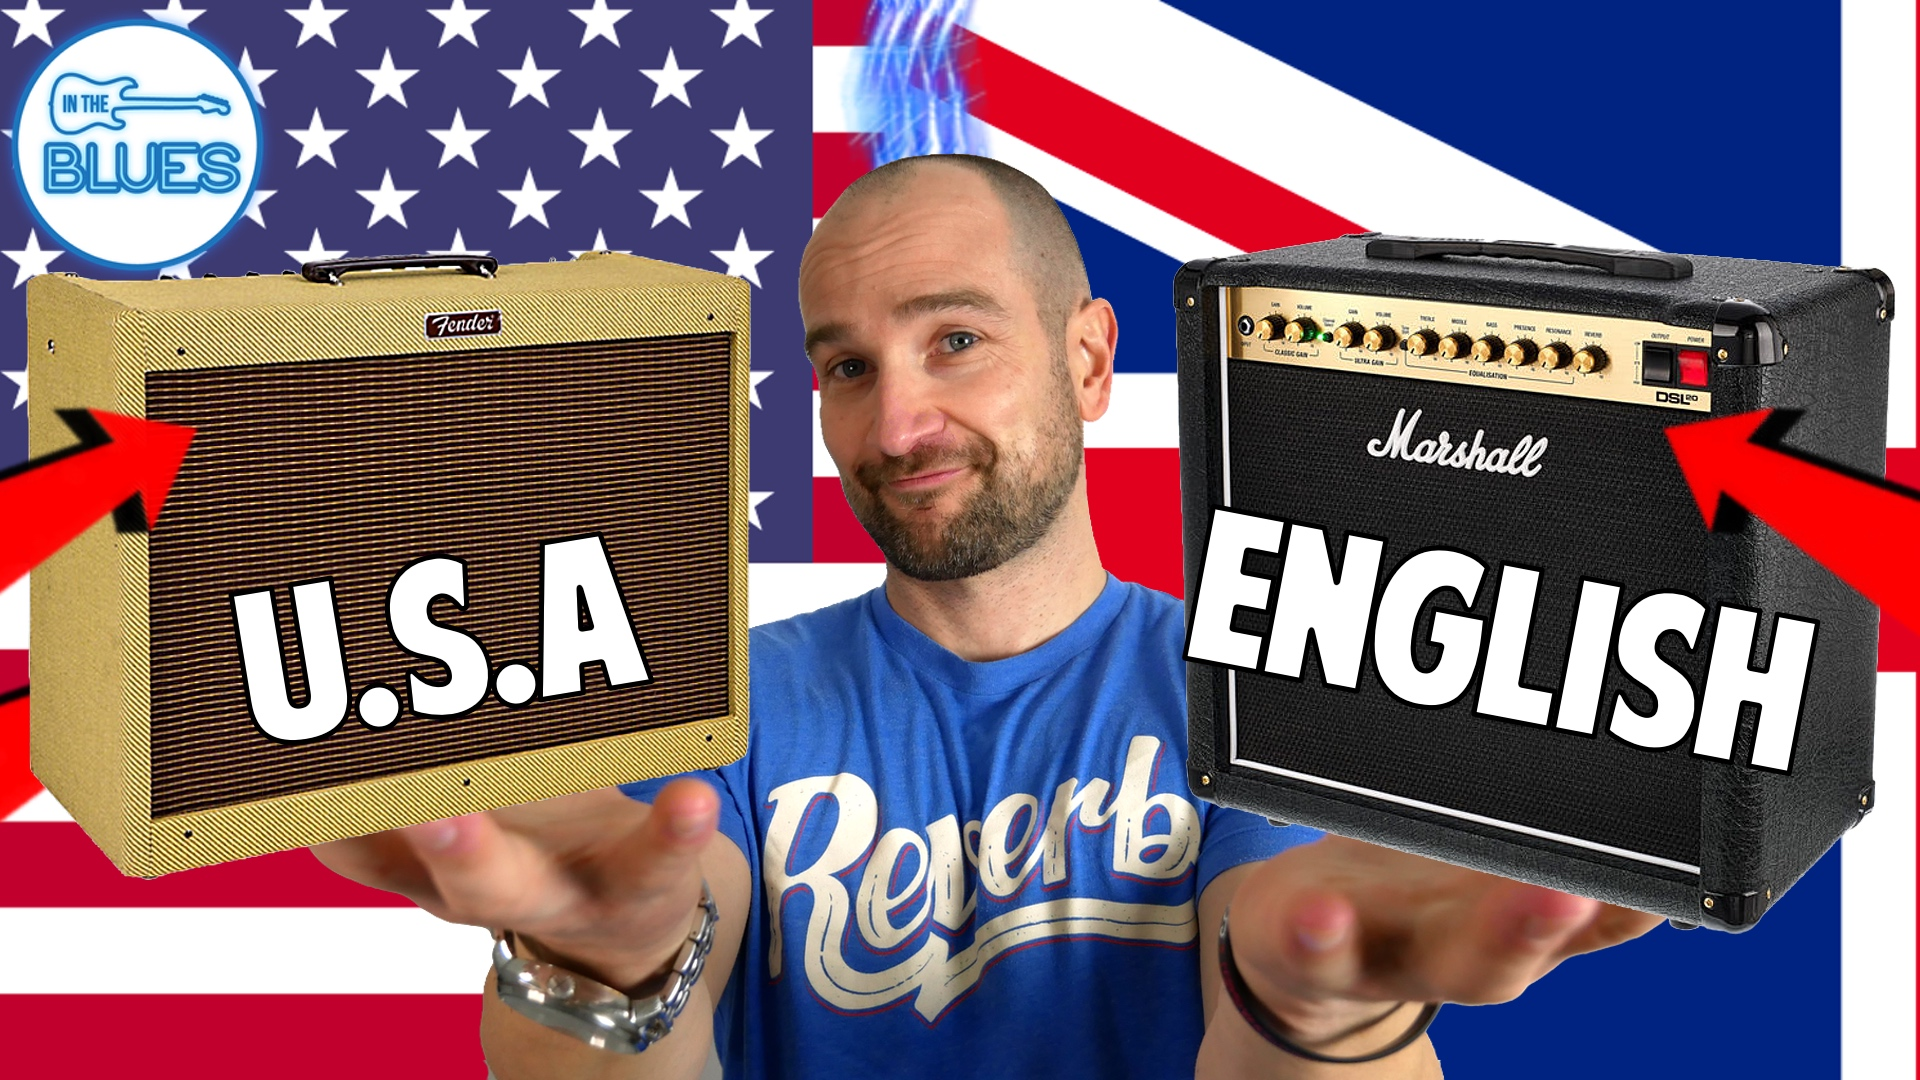 USA vs British Amplifiers